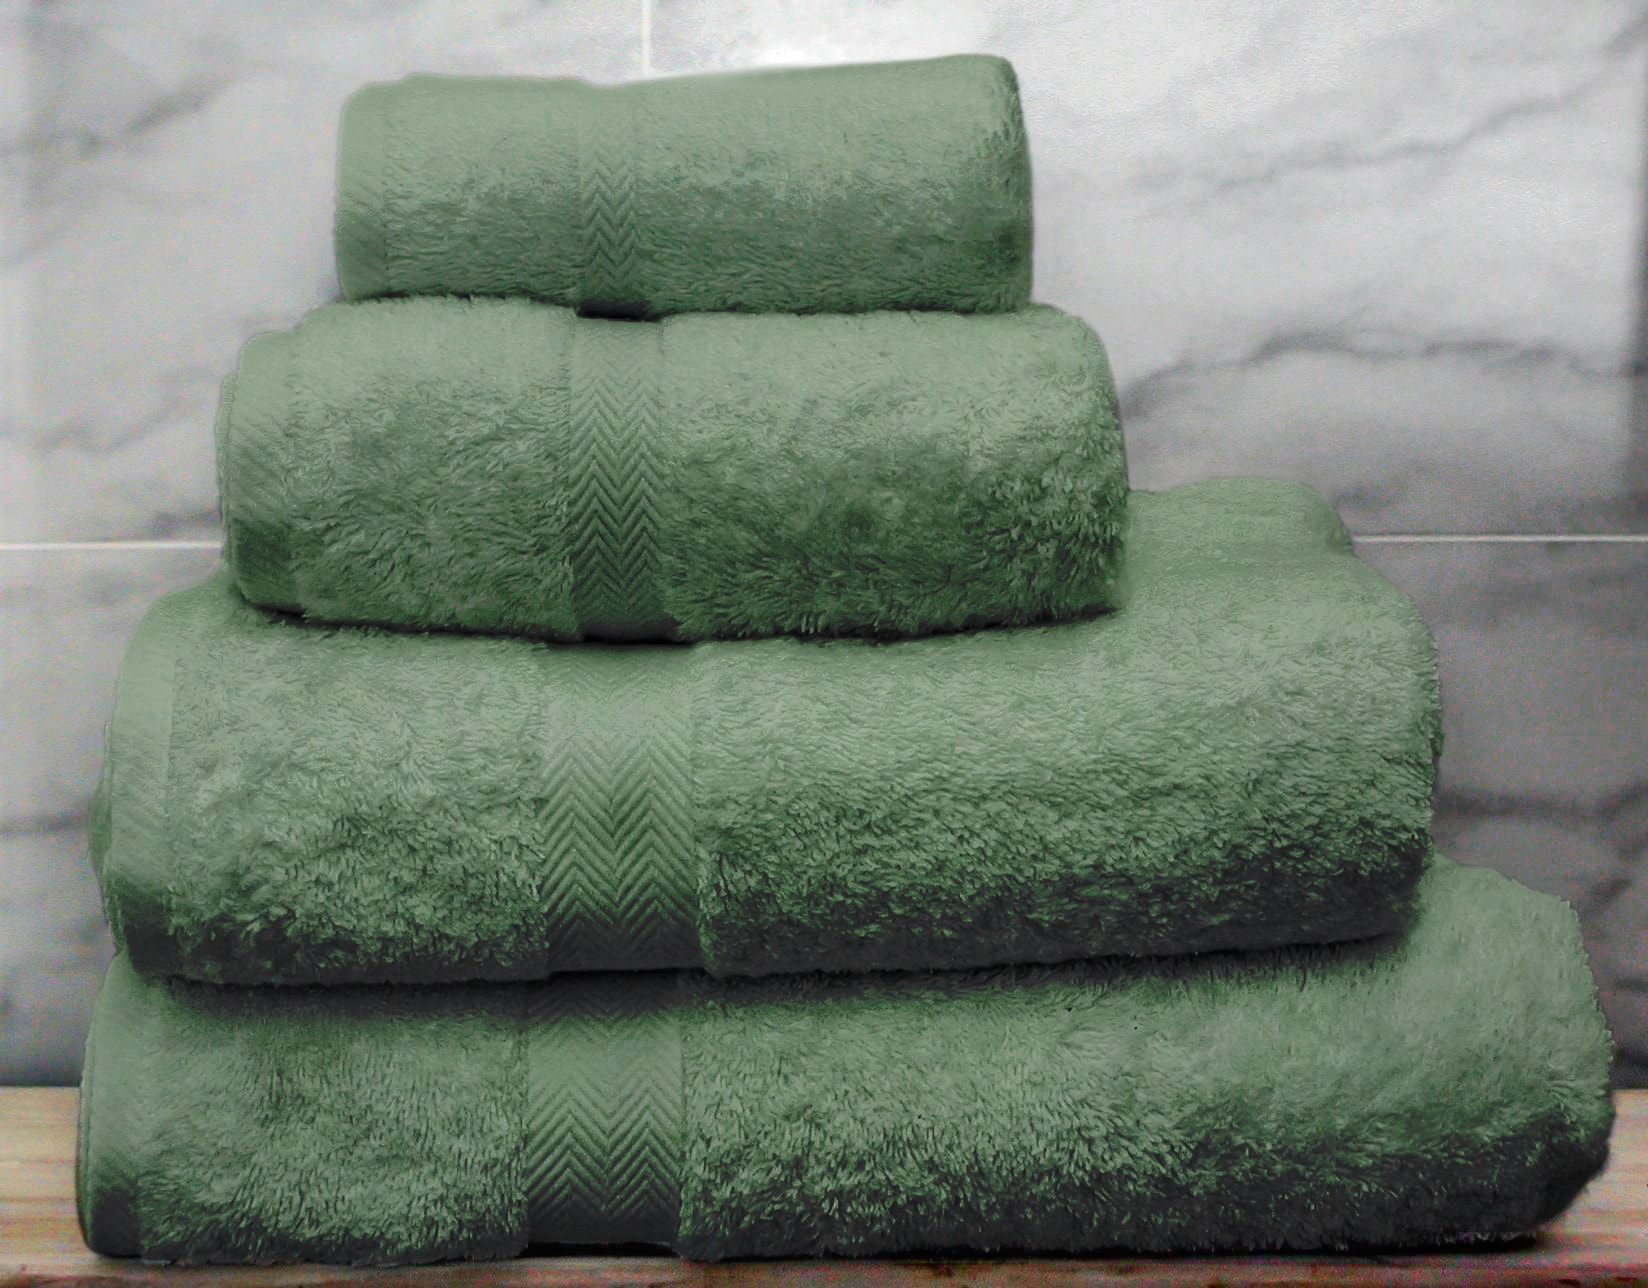 green egyptian cotton towel bale - Egyptian Cotton Towels